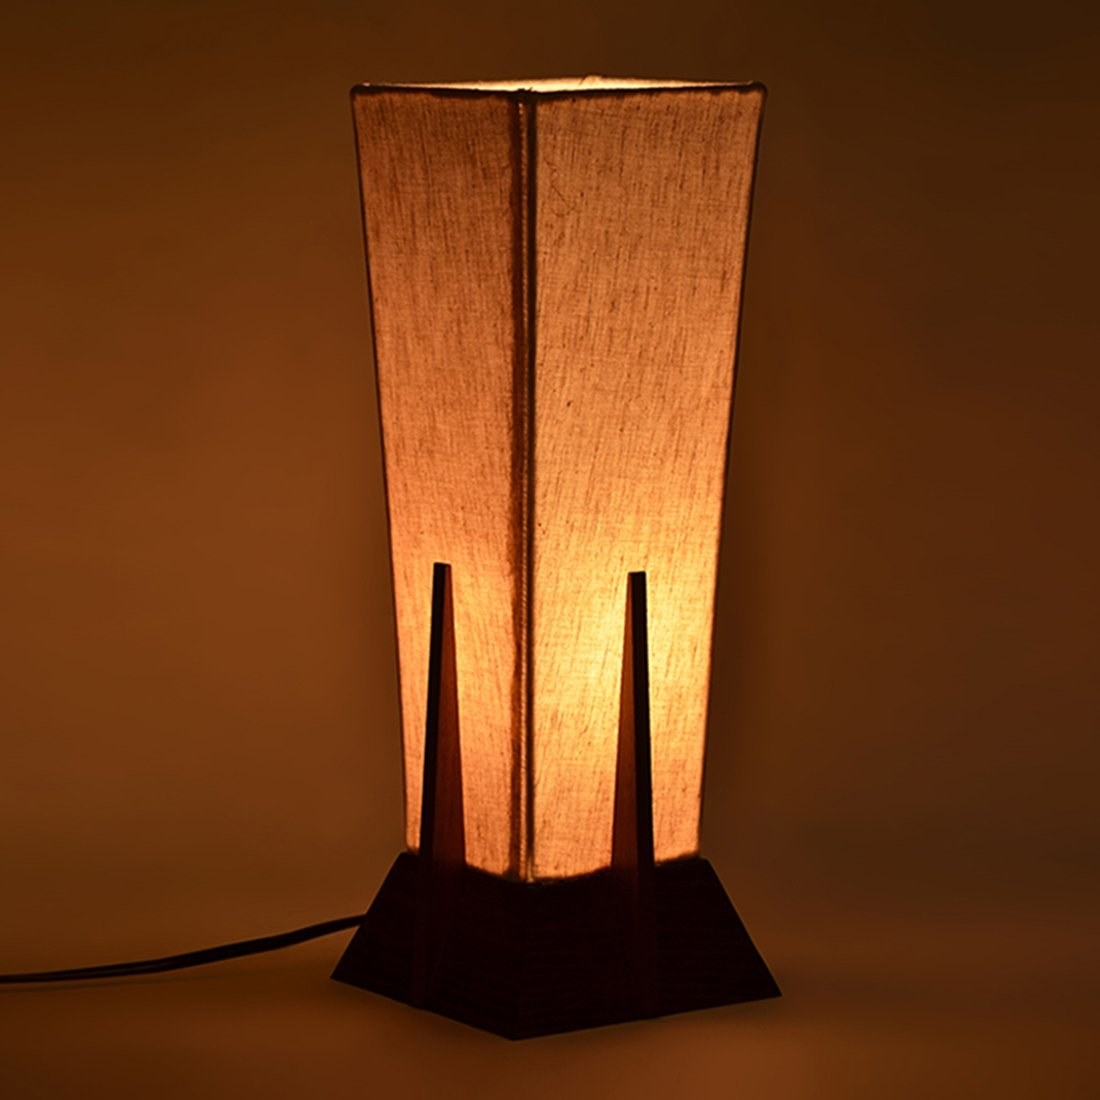 A sheesham lamp in the shape on an inverted pyramid kept on a table